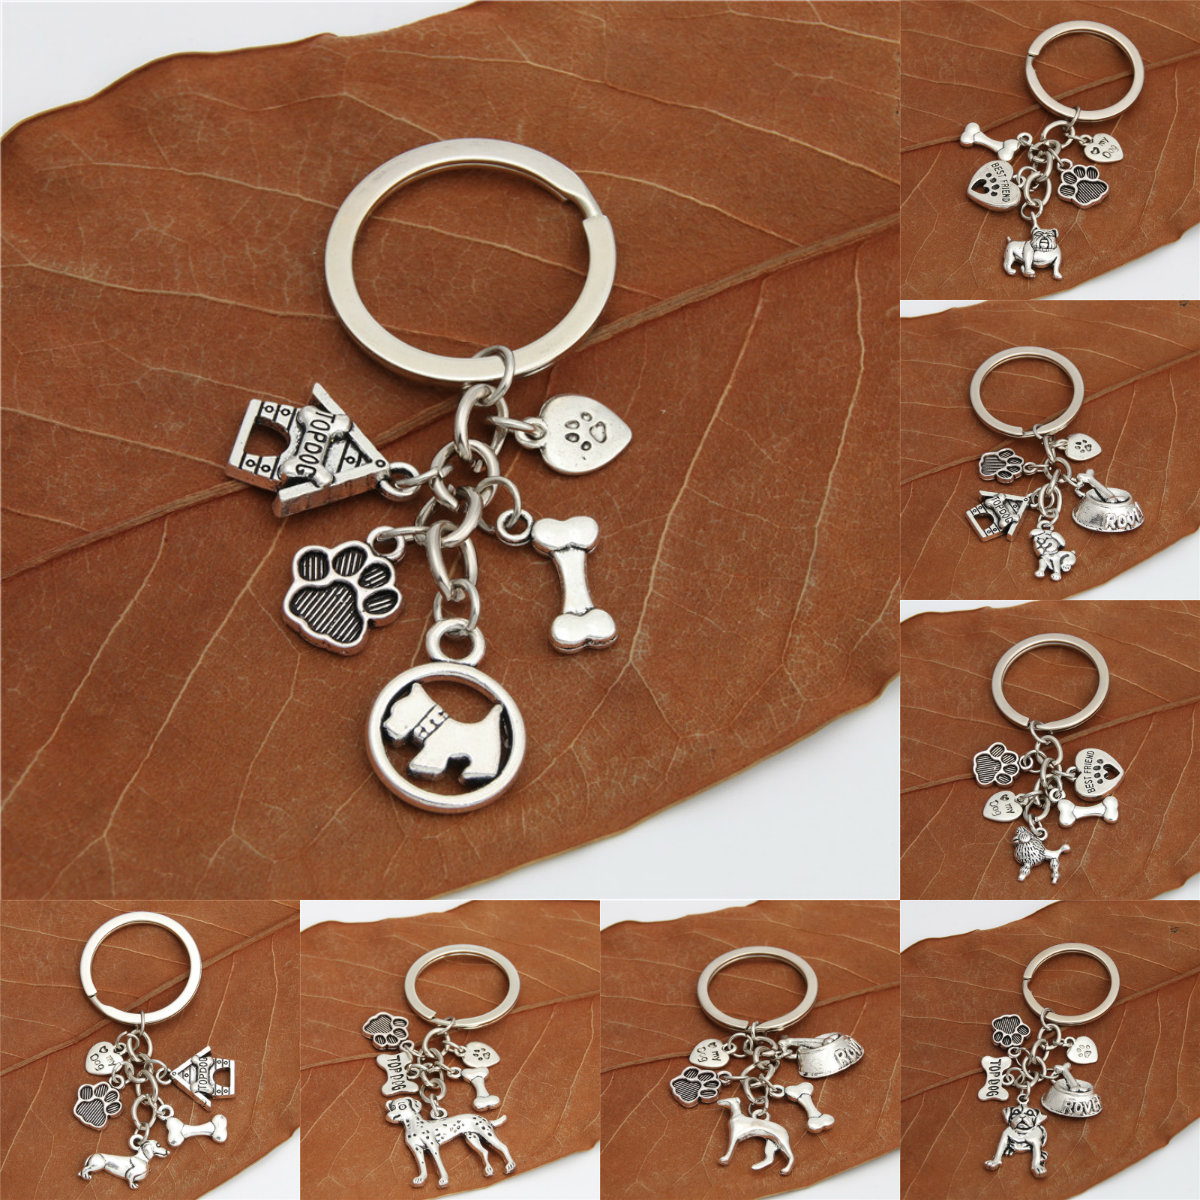 Luggage & Bags Bag Accessories &ornament Creative Funny Cool Bottle Opener Wine Beer Keyring Jewelry Girl Aluminum Alloy Metal Keychain